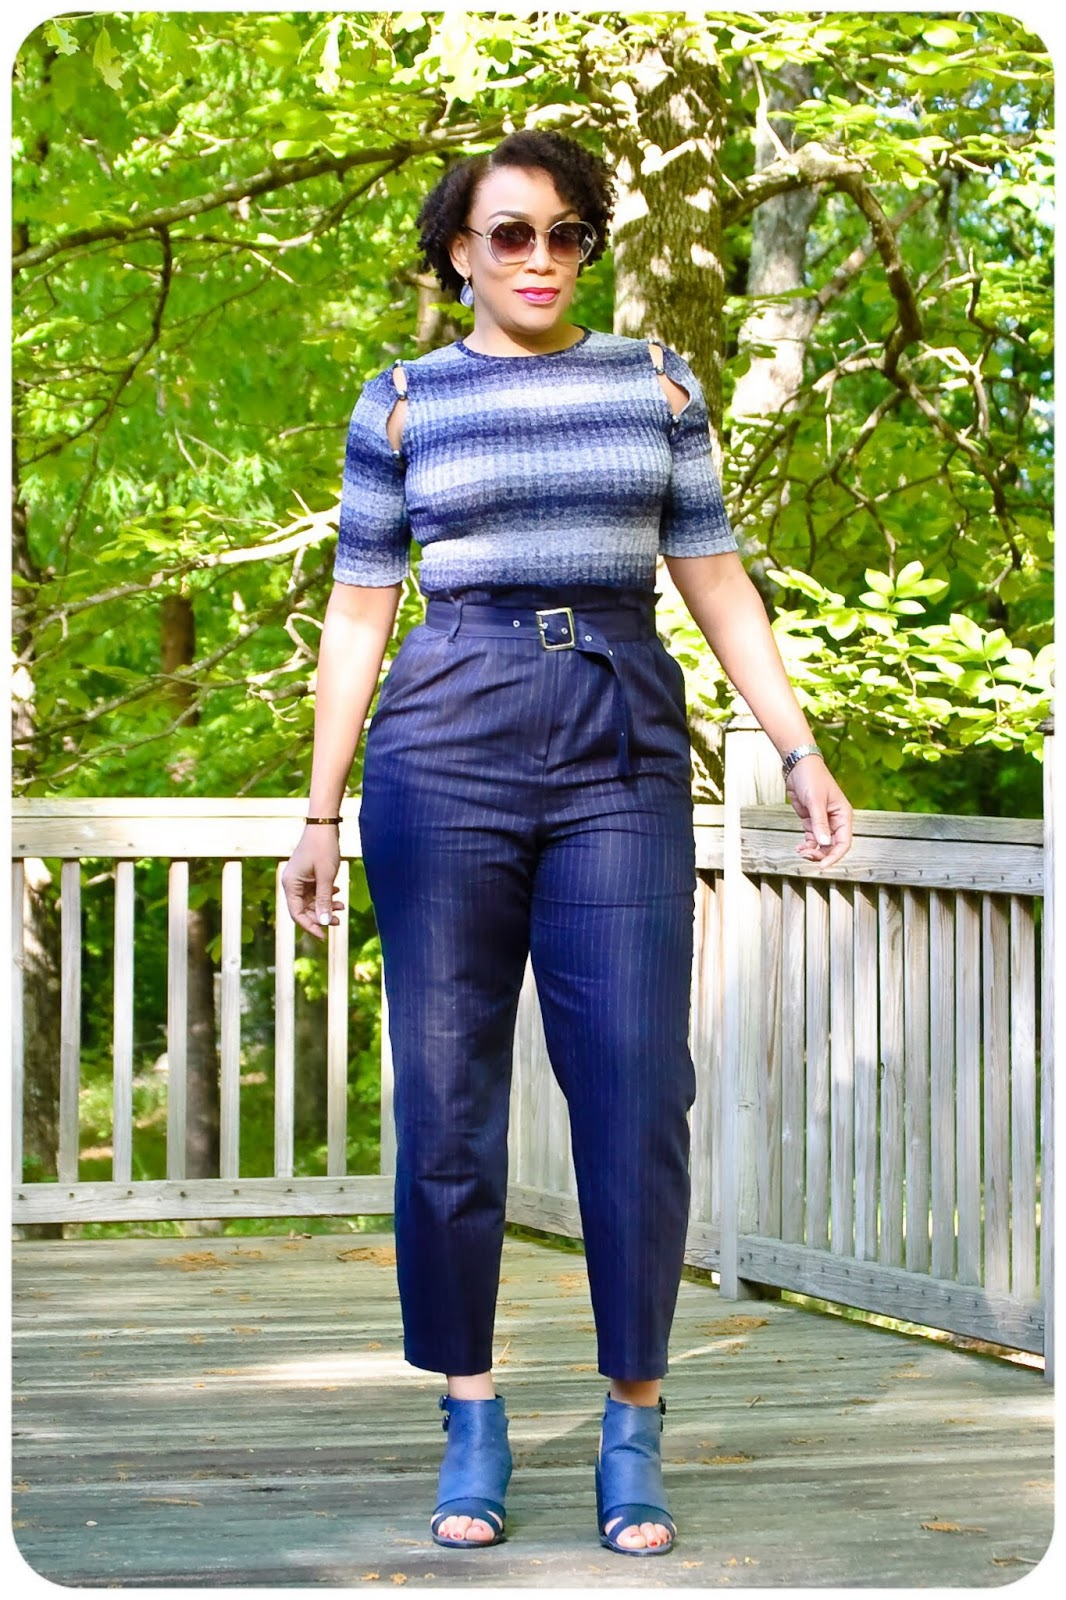 bdcb6366b7232 The pants are my 3rd version of McCall's 7726 (I made a pair for Mikaela  too). My fabric is this amazing Italian Navy Pin Striped Blended Linen  Woven from ...